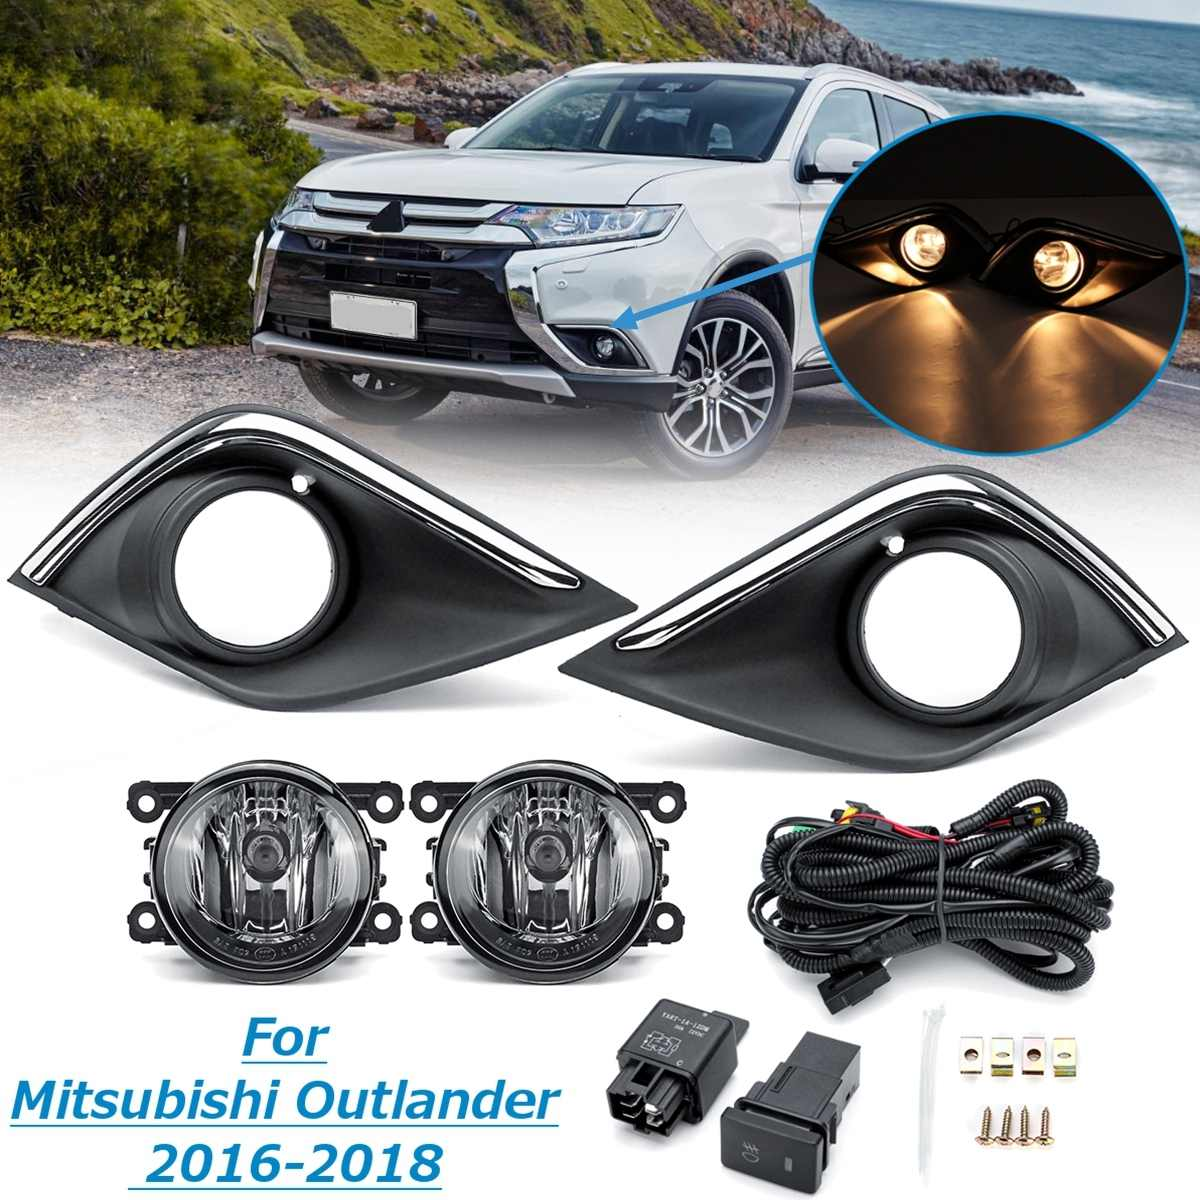 For Mitsubishi Outlander 2016 2017 2018 1 Pair Car Bumper Fog light Lamp With Cover Grill Harness Kit Daytime Light StylingFor Mitsubishi Outlander 2016 2017 2018 1 Pair Car Bumper Fog light Lamp With Cover Grill Harness Kit Daytime Light Styling